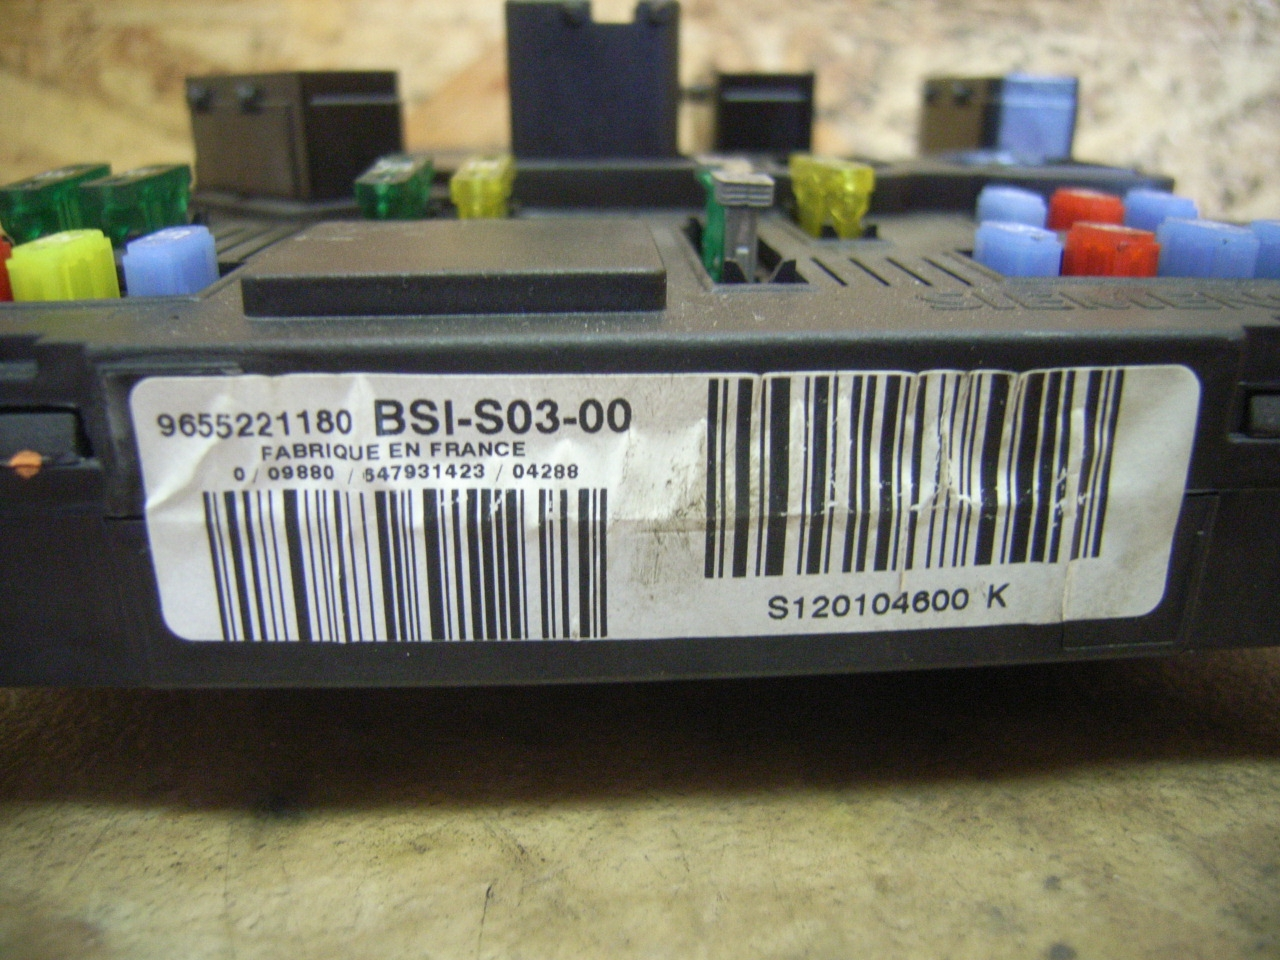 432369 Bote Fusibles Peugeot 407 Sw Bsis0300 Ebay Fuse Box Description De Larticle